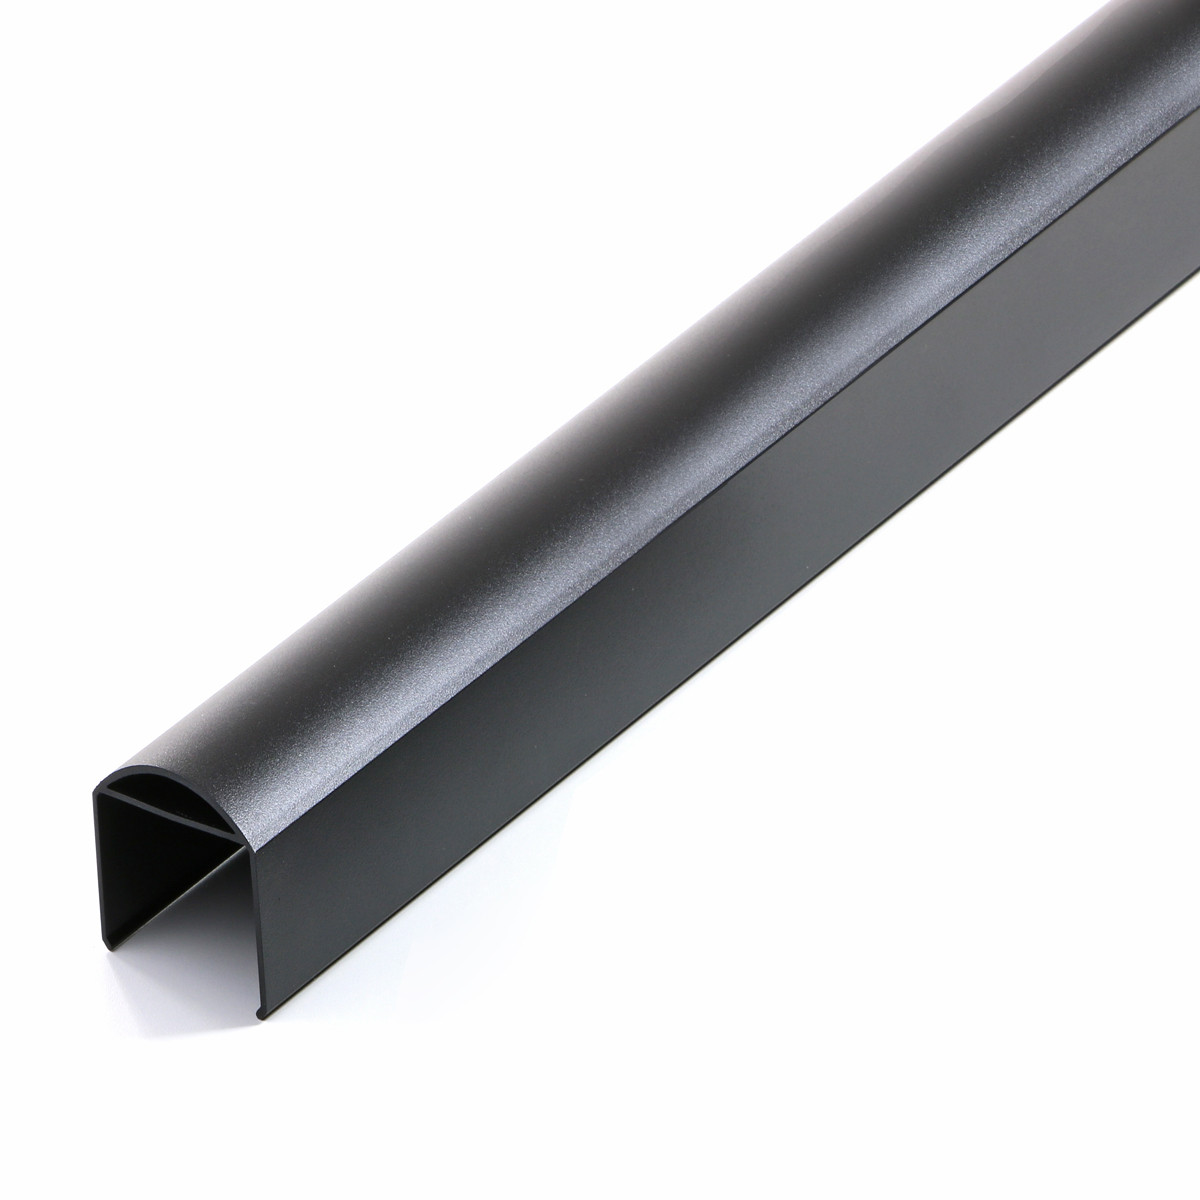 The Fortress AL13 Home Round Accent Top Rails are available in a Black Sand finish.